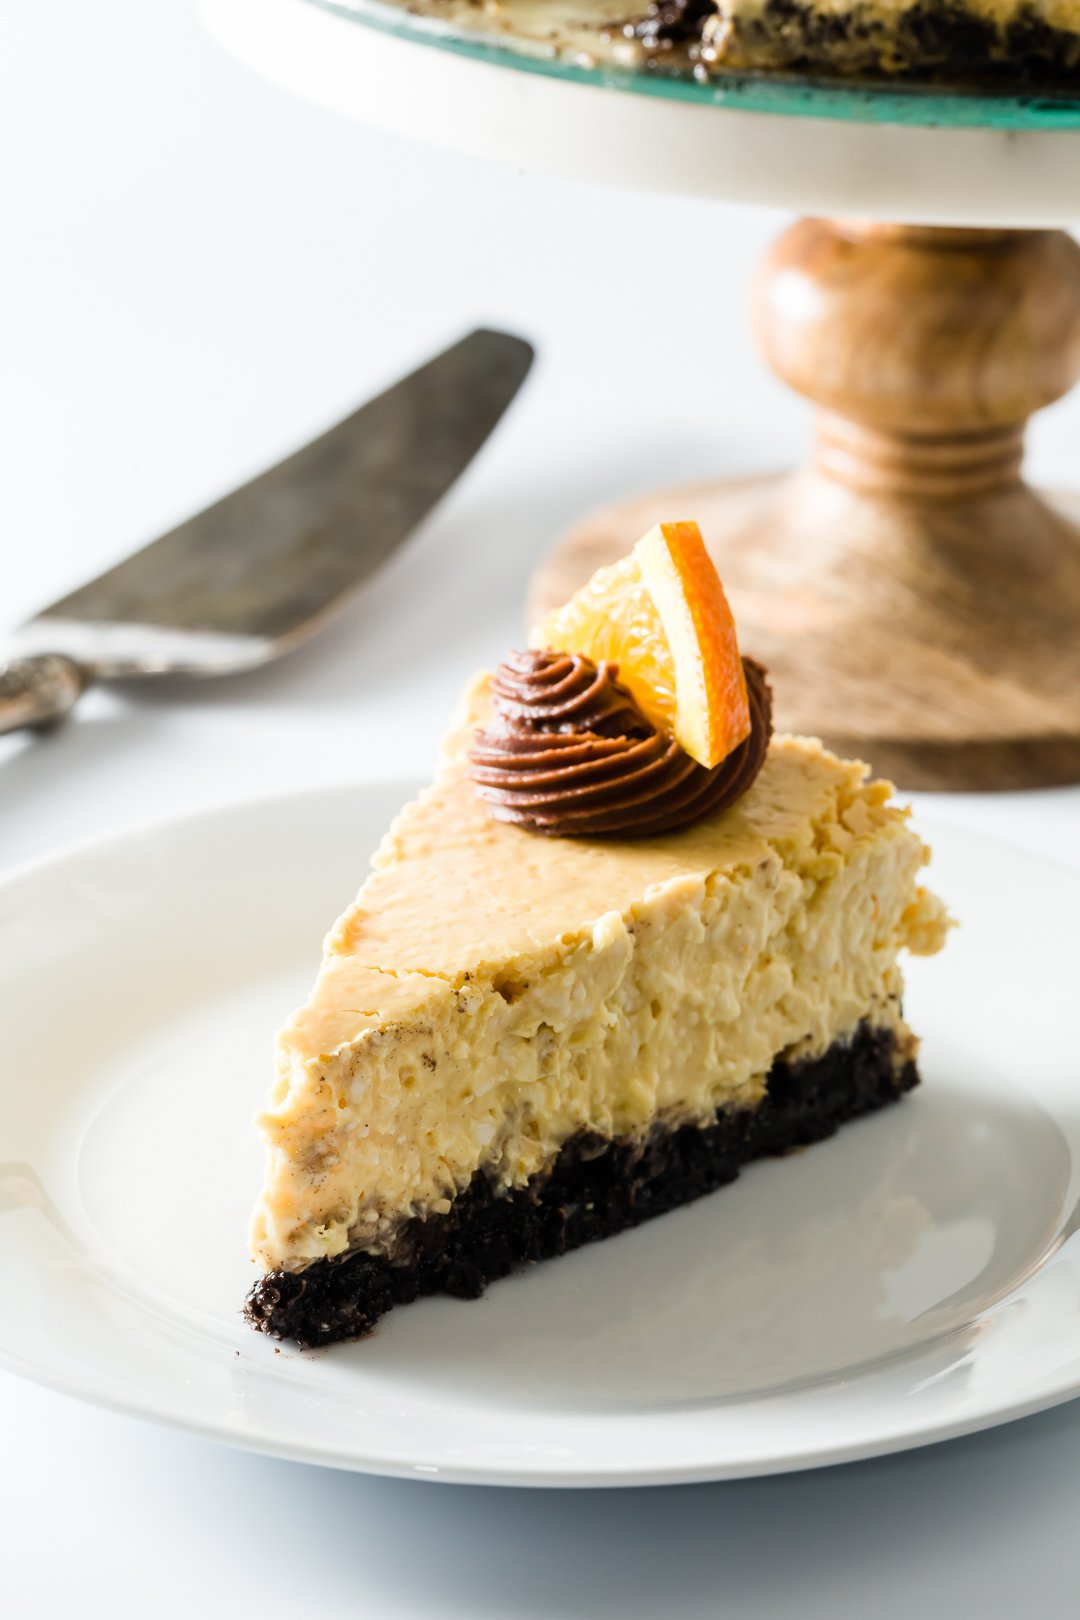 Orange Cheesecake with Oreo Crust from Cupcake Project